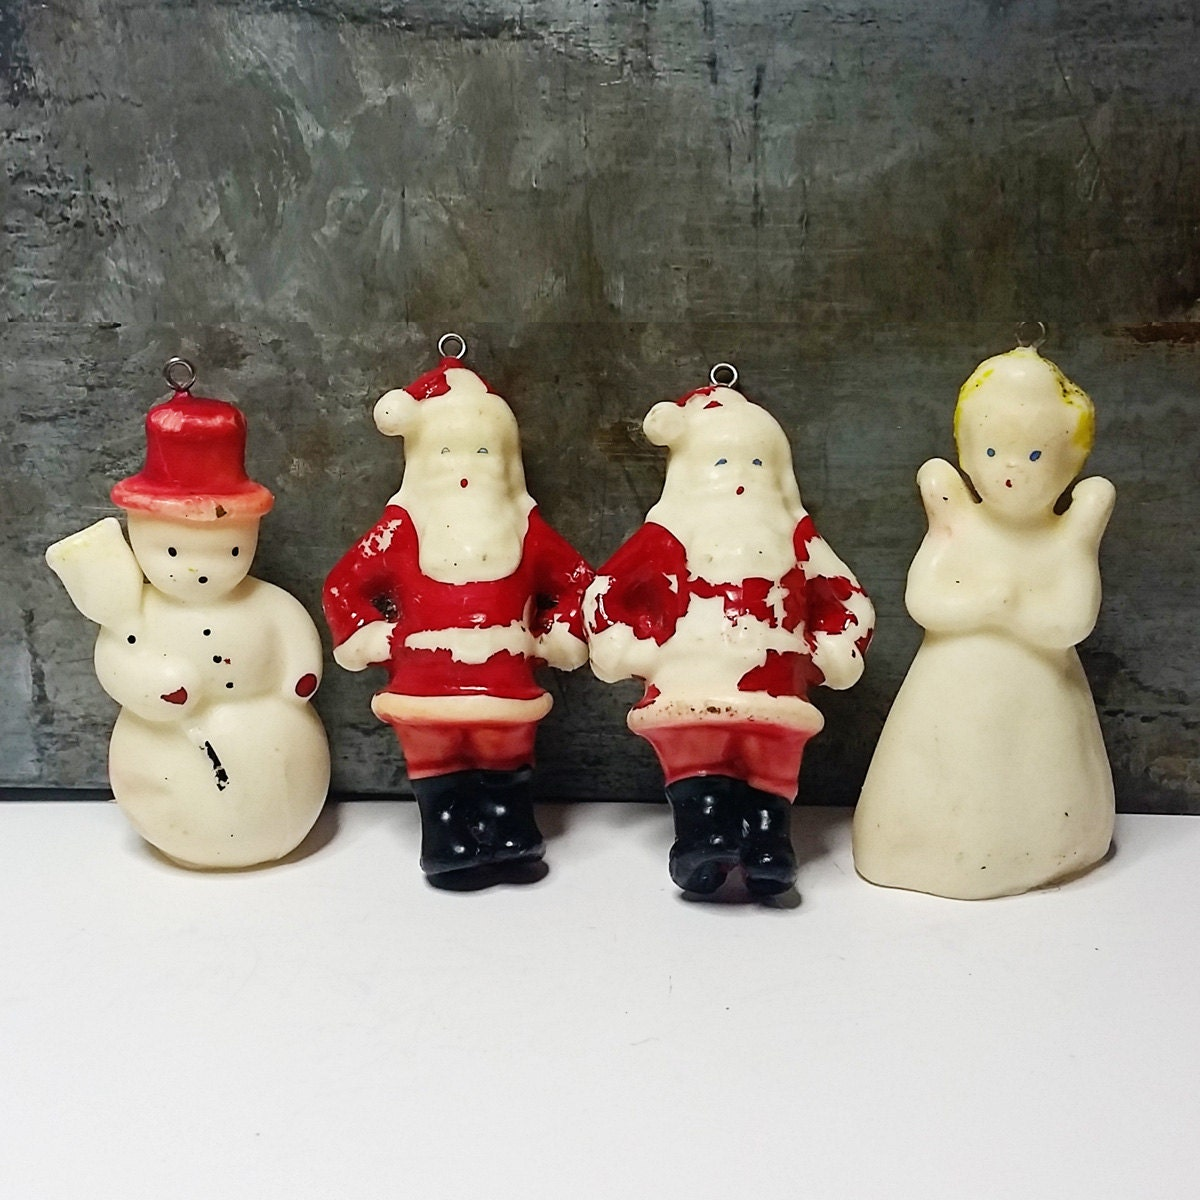 Details 4 Vtg Tavern Gurley Wax Christmas Hollow Candle Ornaments